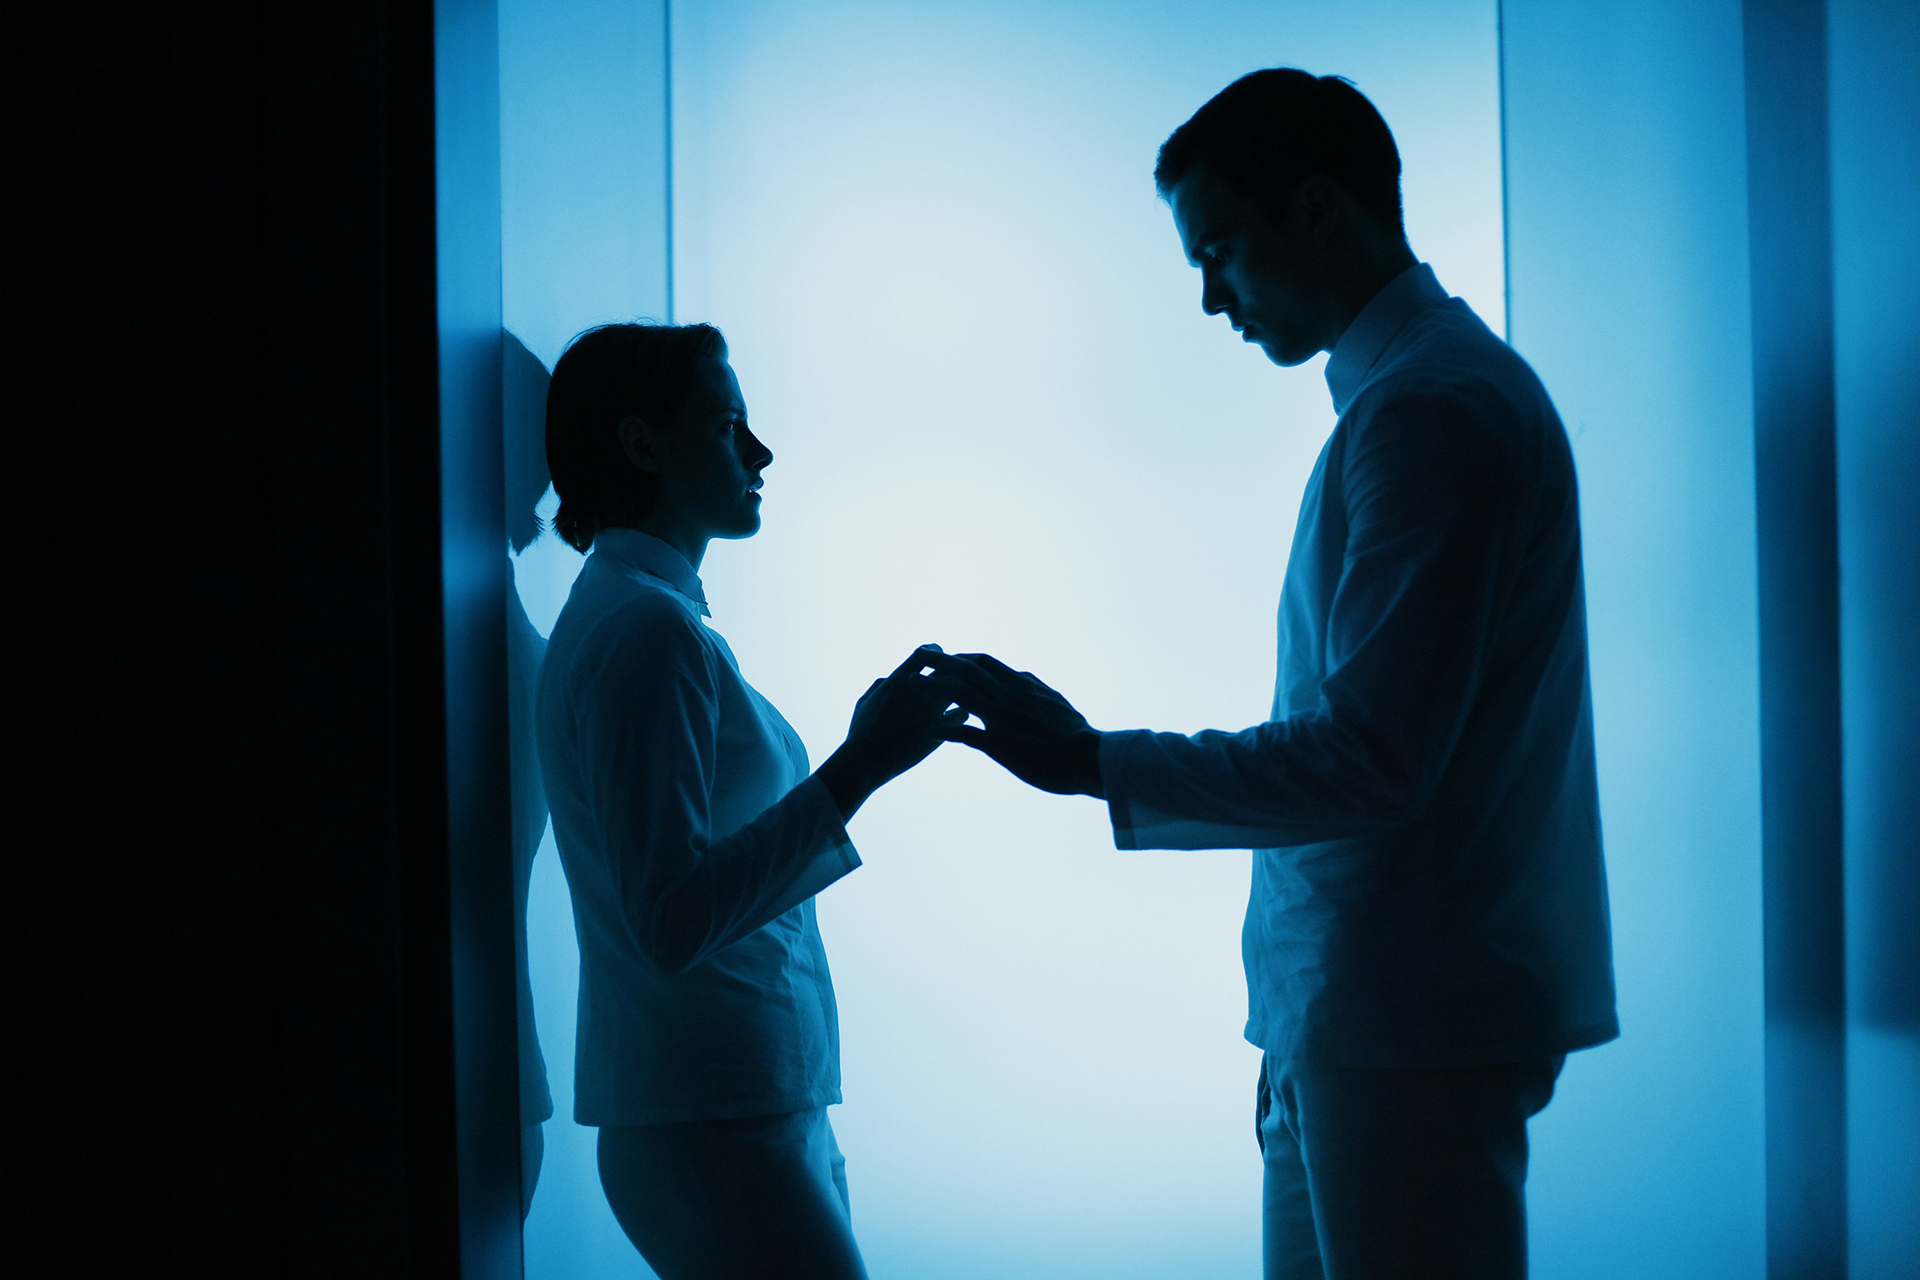 #Equals to have its US premiere at the Tribeca Film Festival